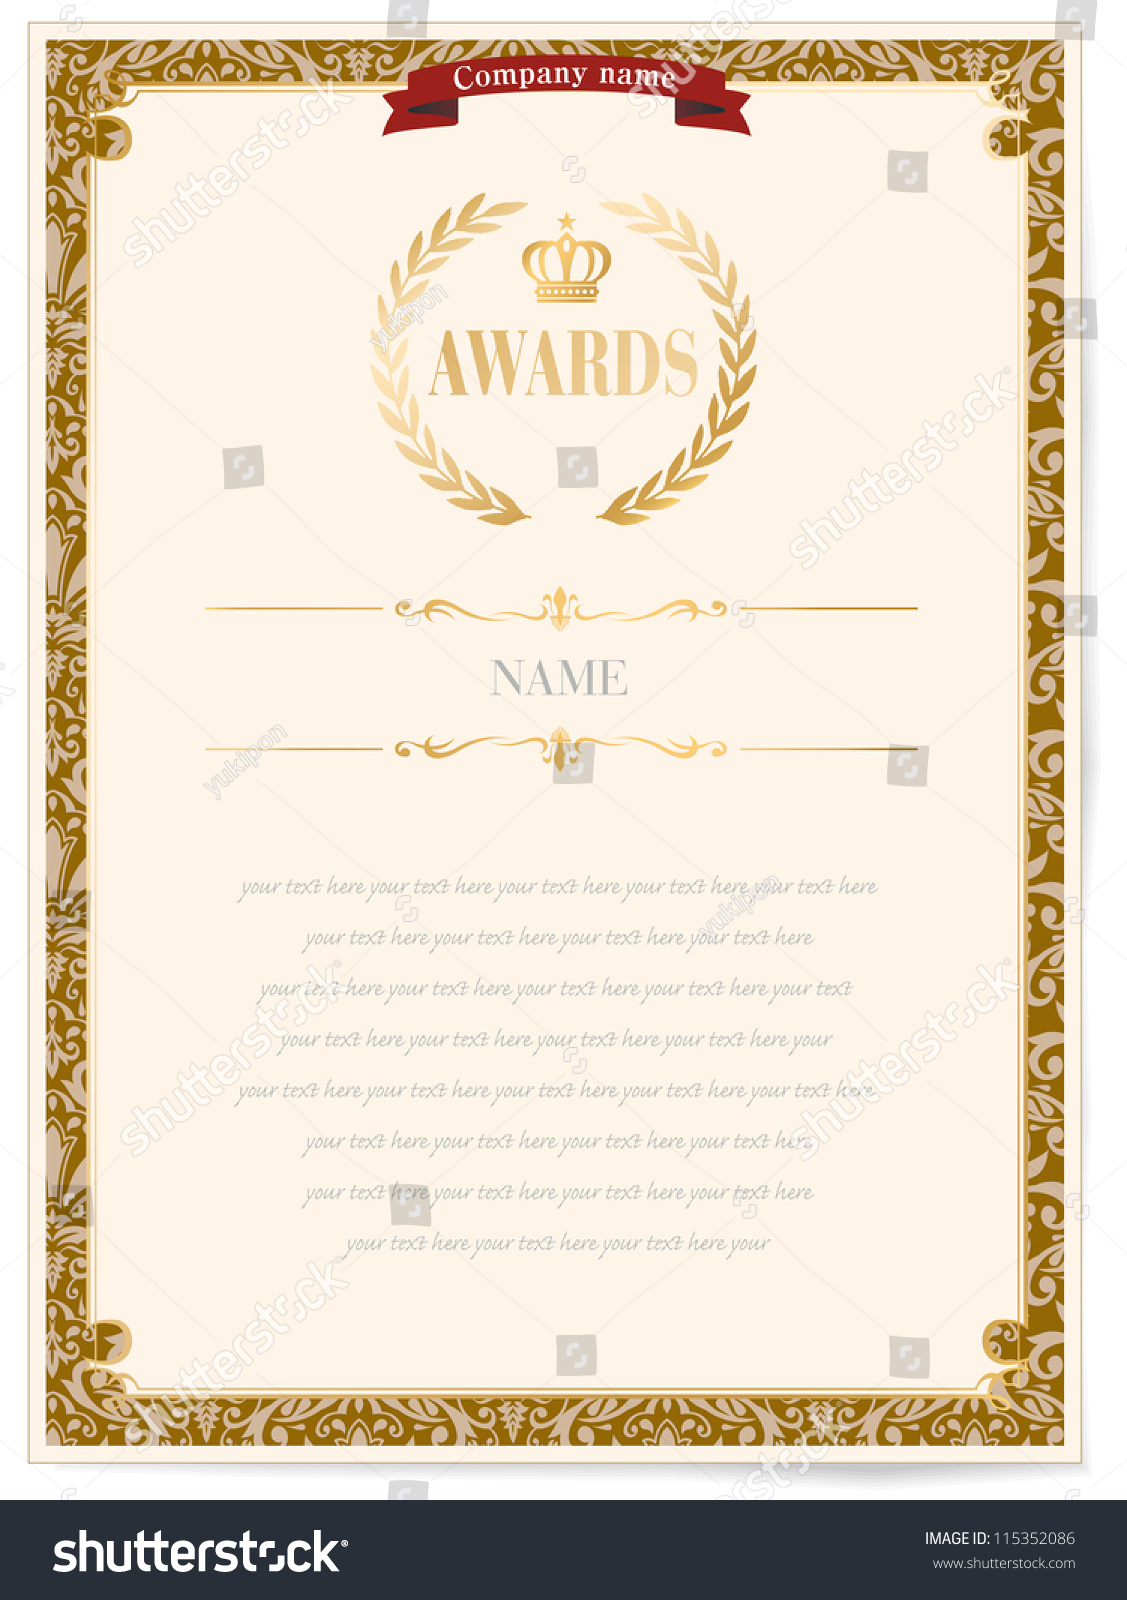 Illustration certificate award excellence golden ribbon stock illustration of a certificate award of excellence with golden ribbon 1betcityfo Image collections